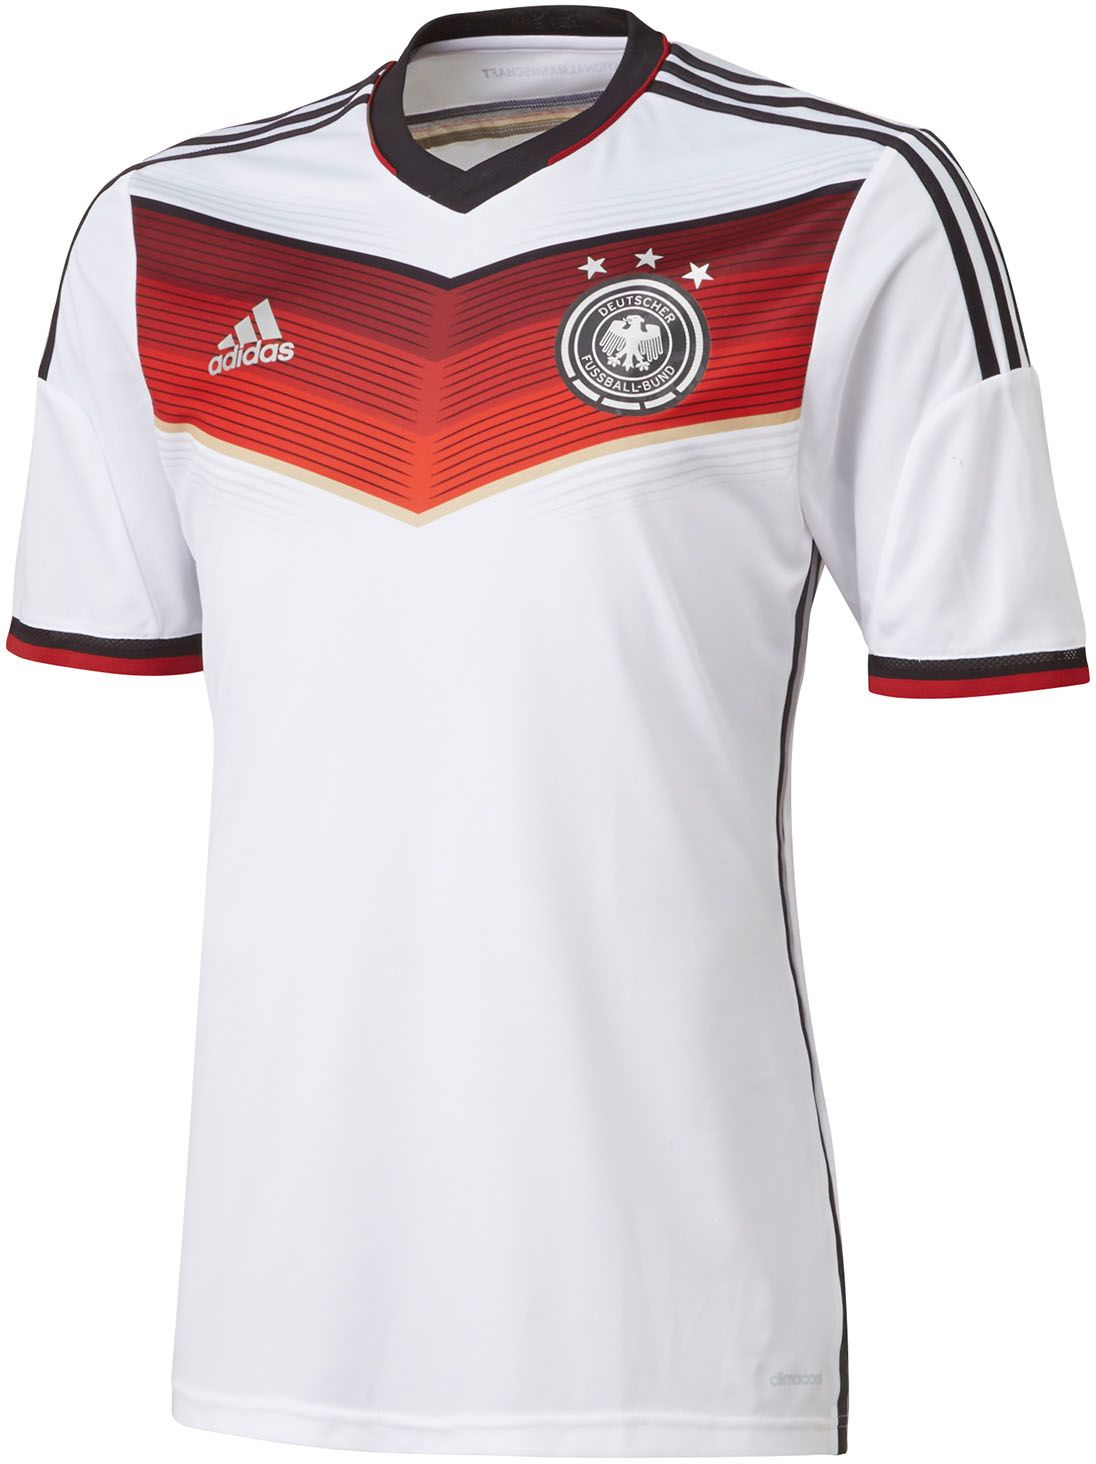 The new Germany 2014 World Cup Home Jersey is mainly white with red and  black applications. On the front of the Germany 2014 World Cup Kit features  a ... 82afc1c221444